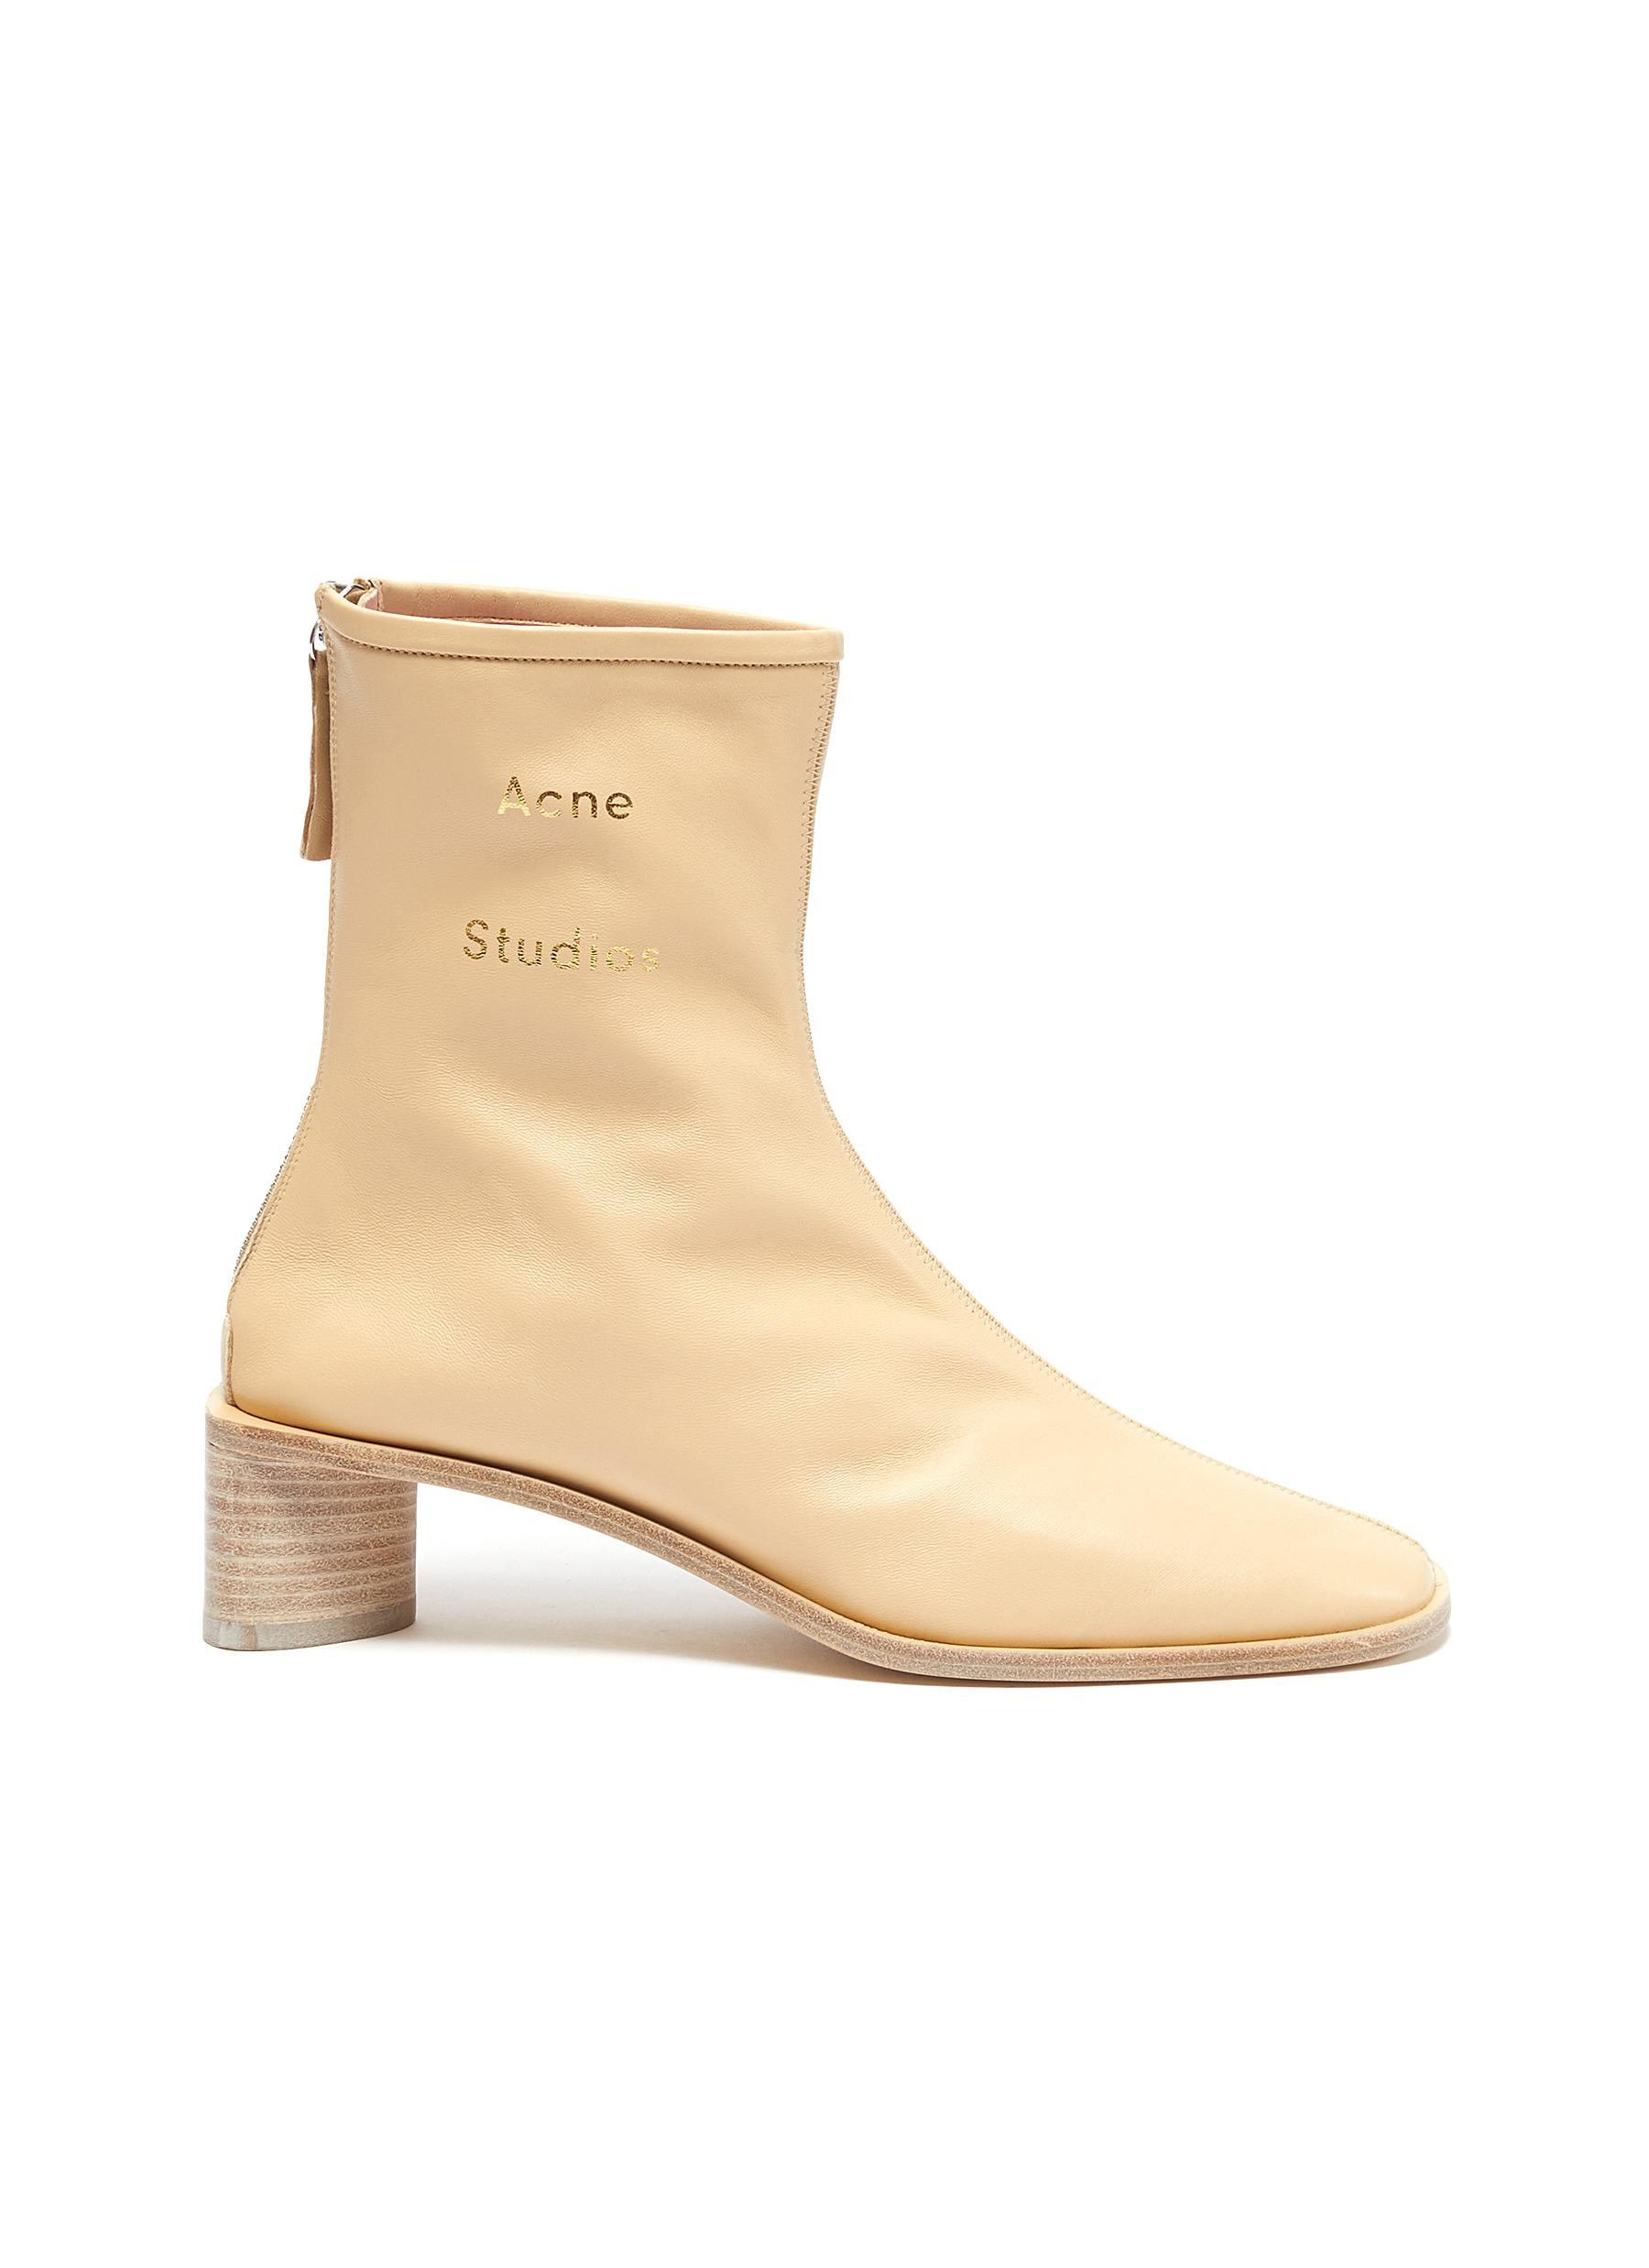 Acne Studios Boots Block heel branded leather boots